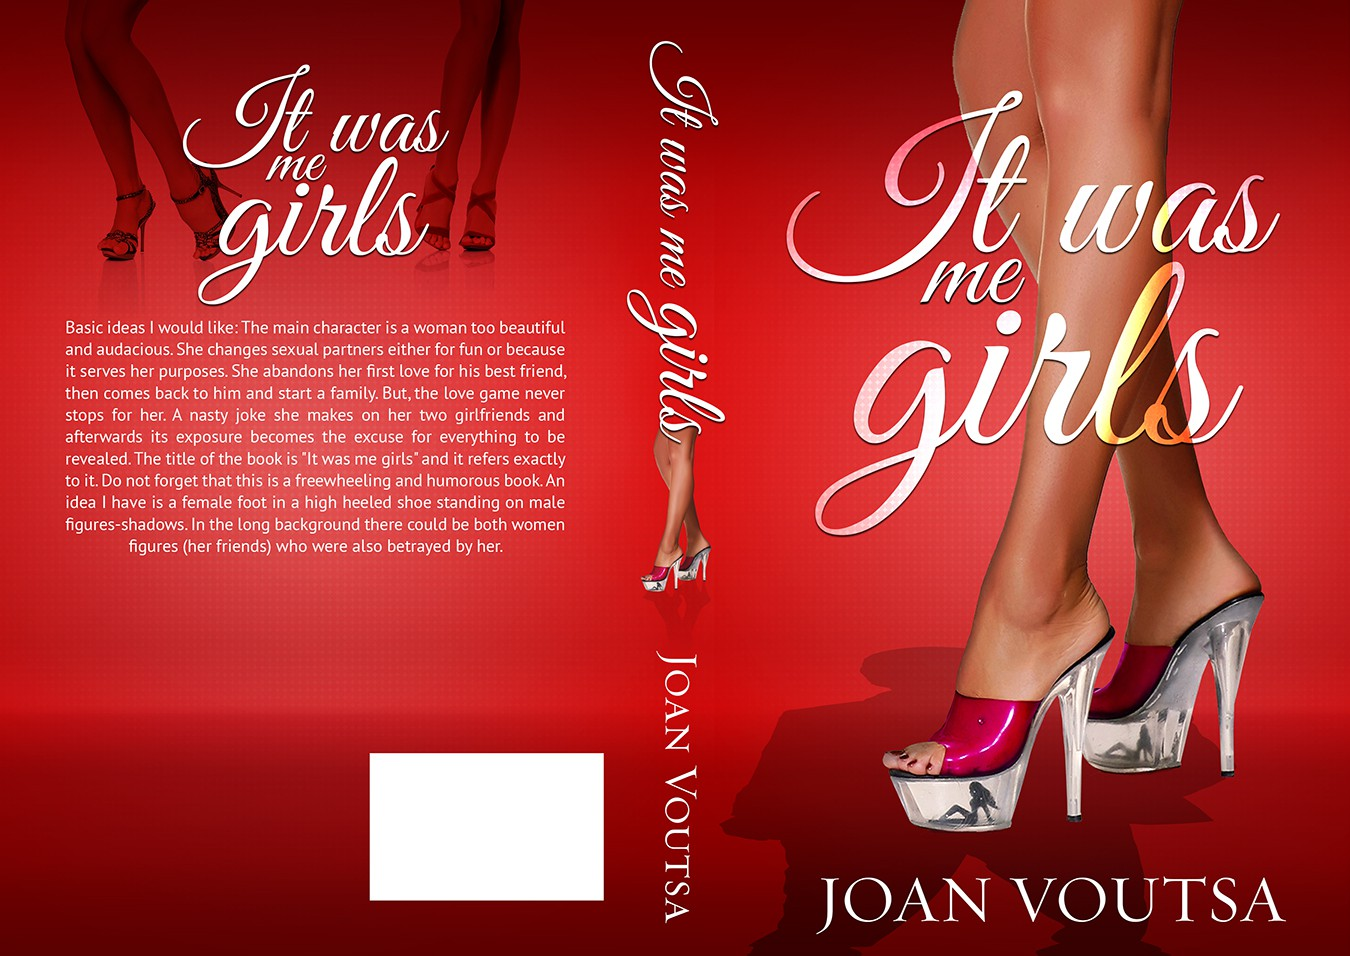 book or magazine cover for It was me girls